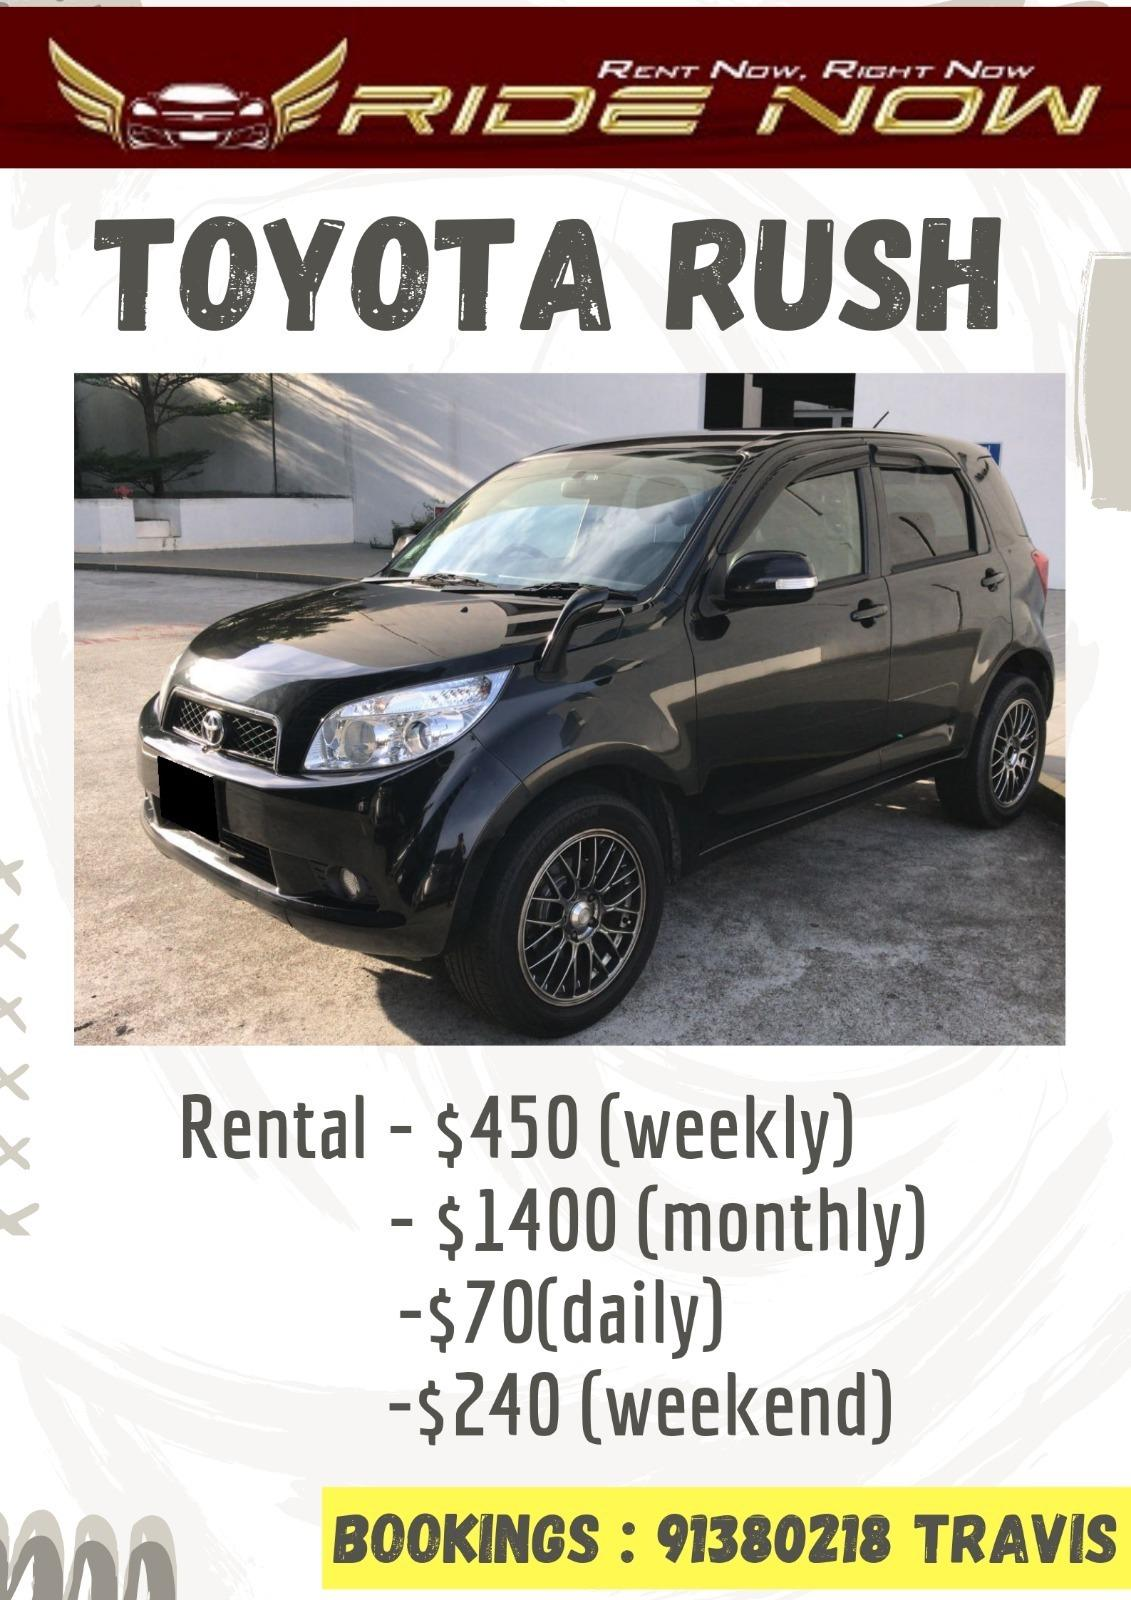 Toyota Rush 1.5A SUV Compact SUV good for daily usage!